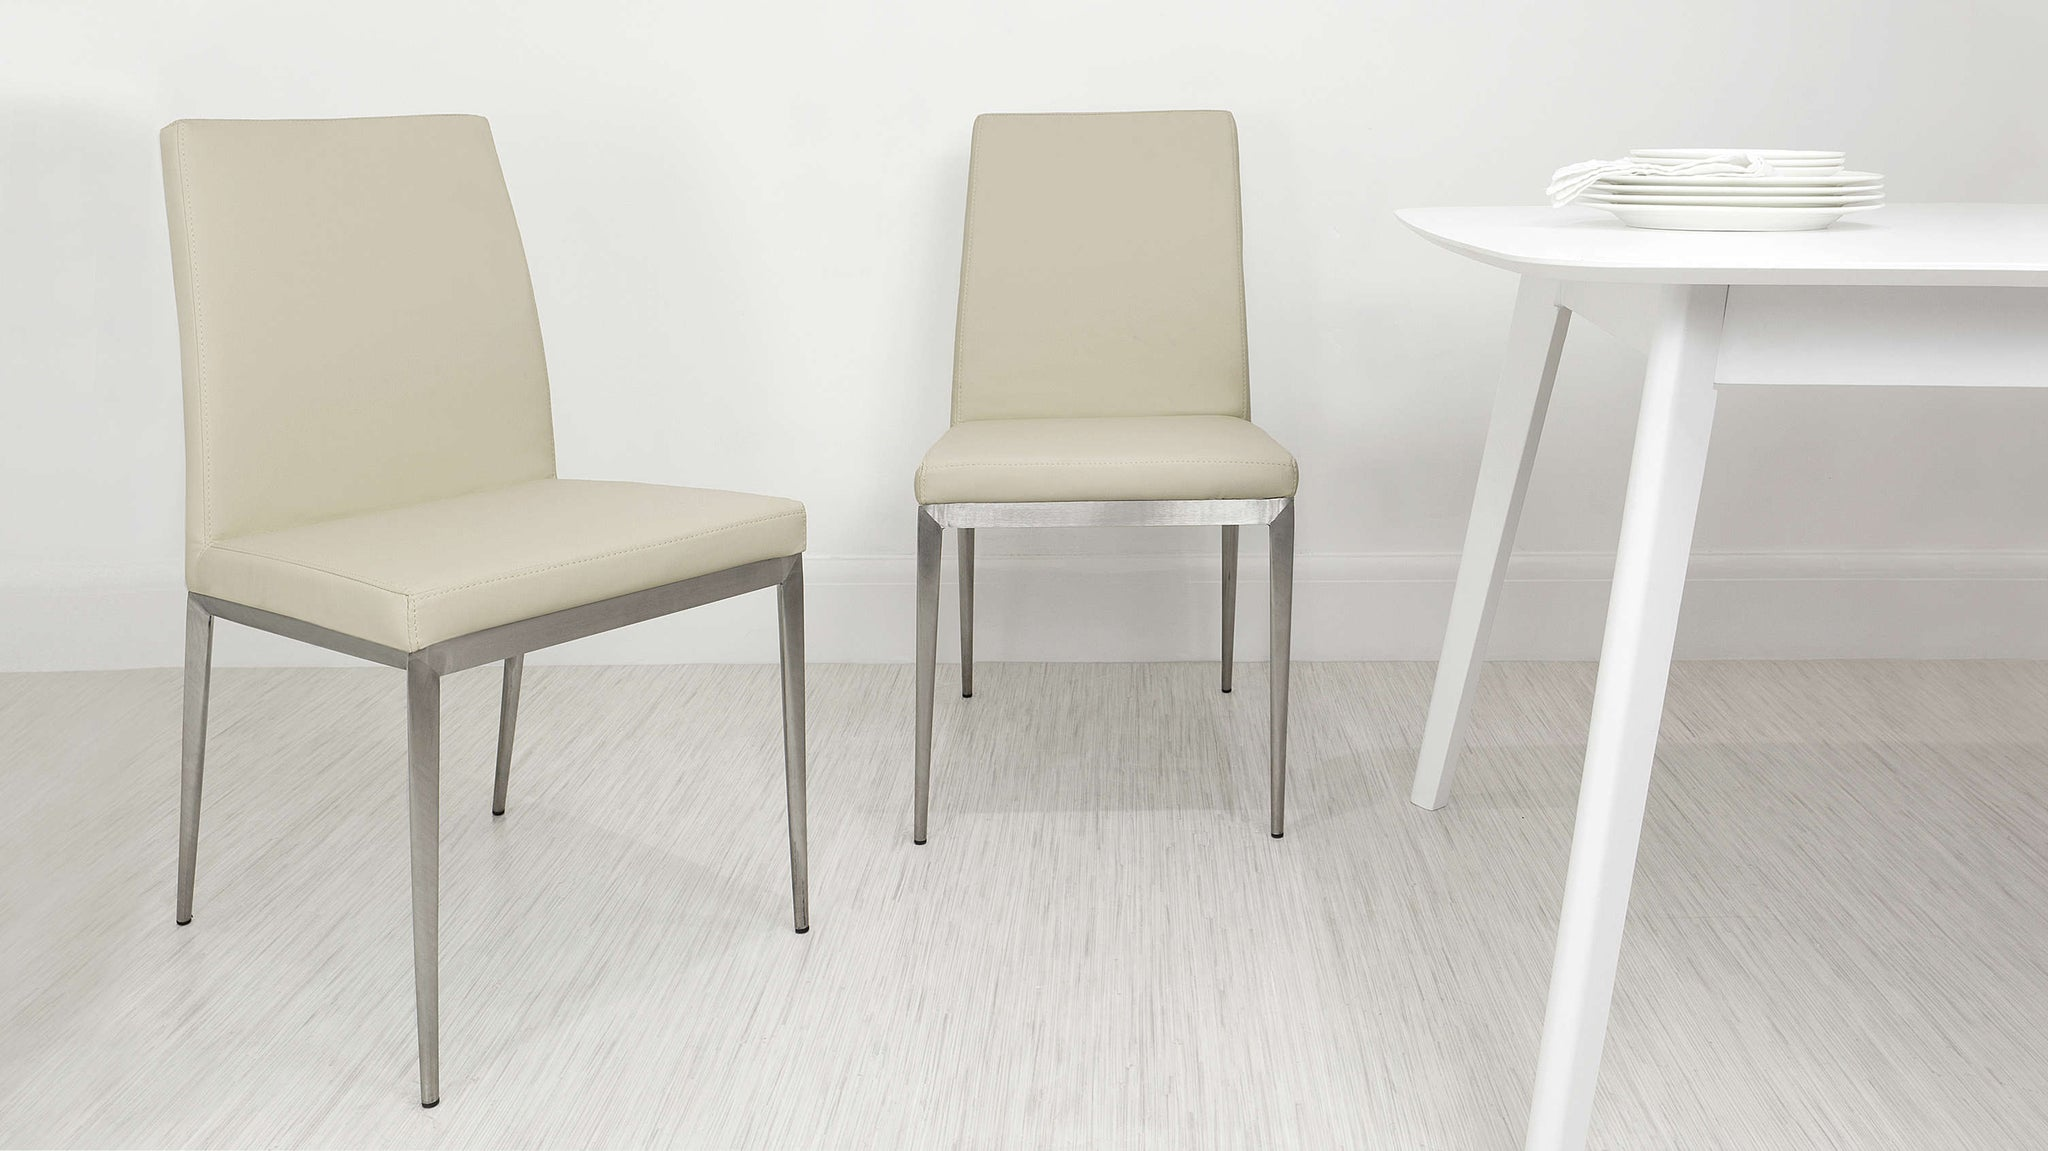 Beige Faux Leather Dining Chairs